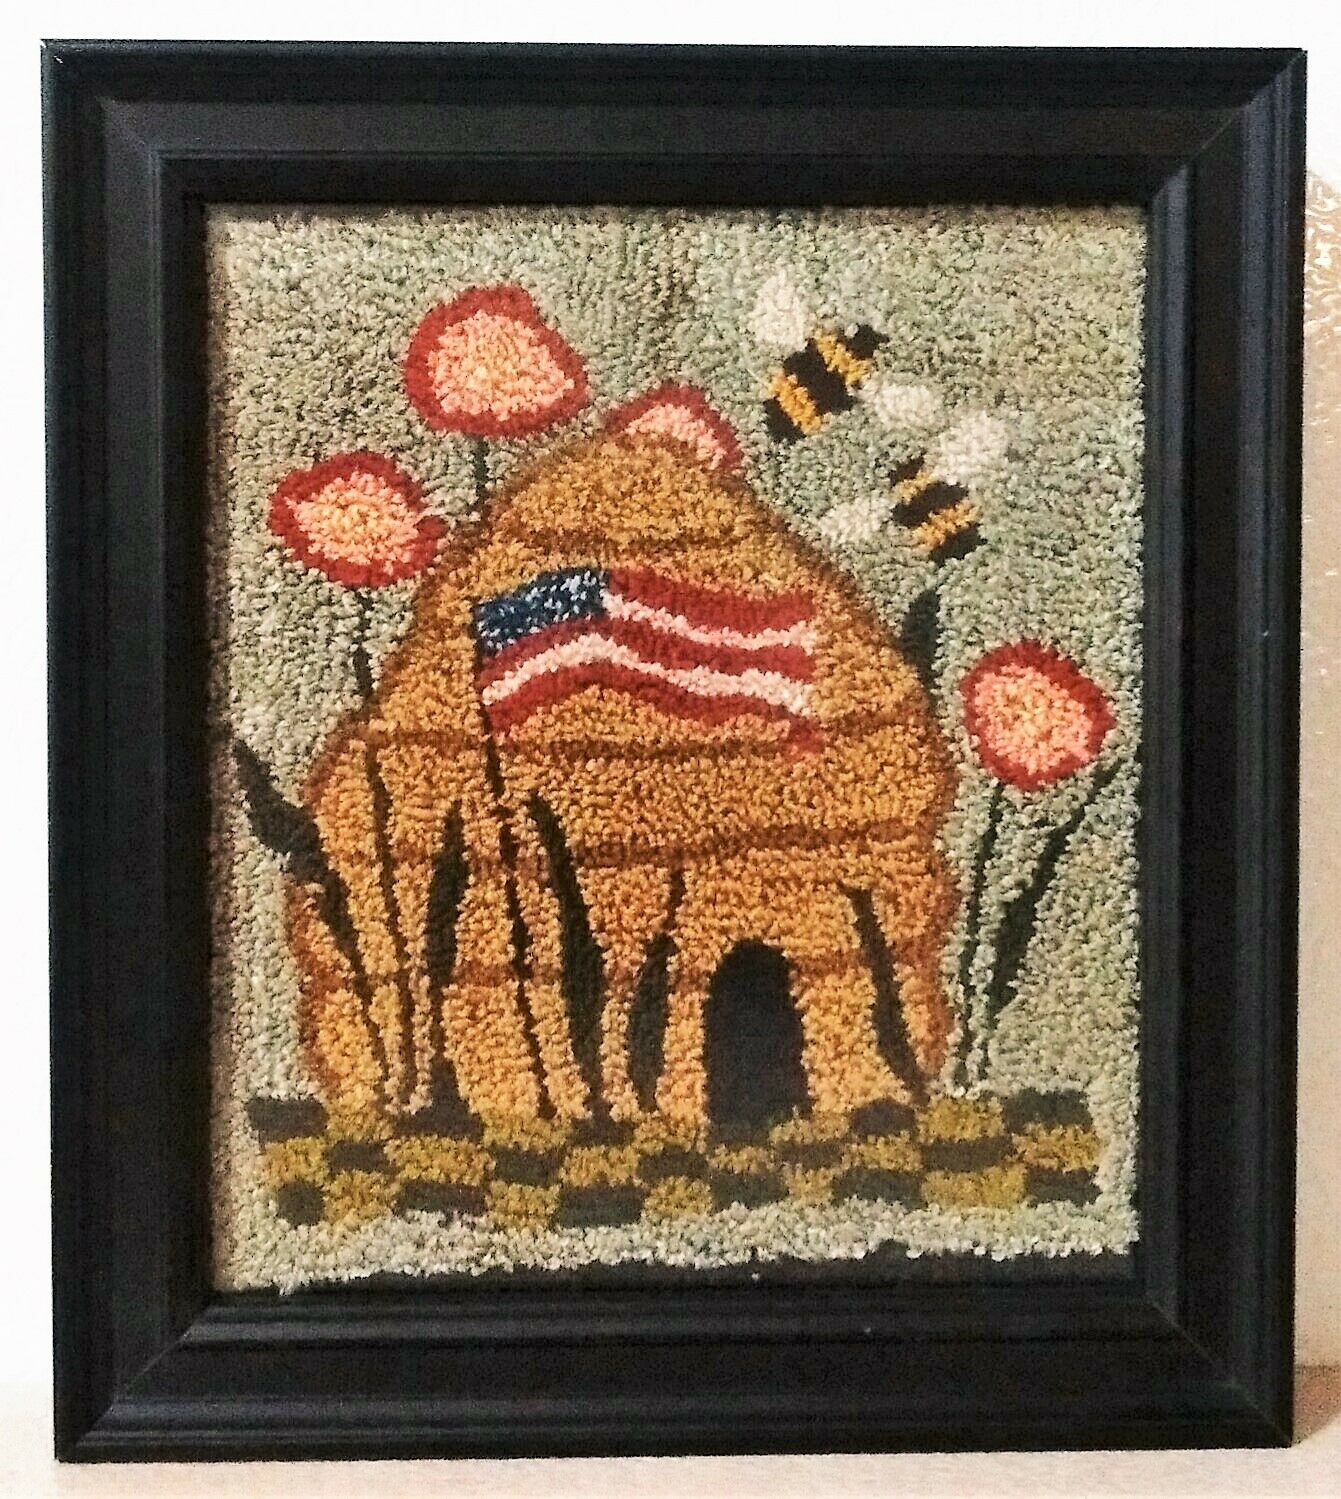 Framed patriotic wall hanging, punch needle, handmade, American flag, bees, hive